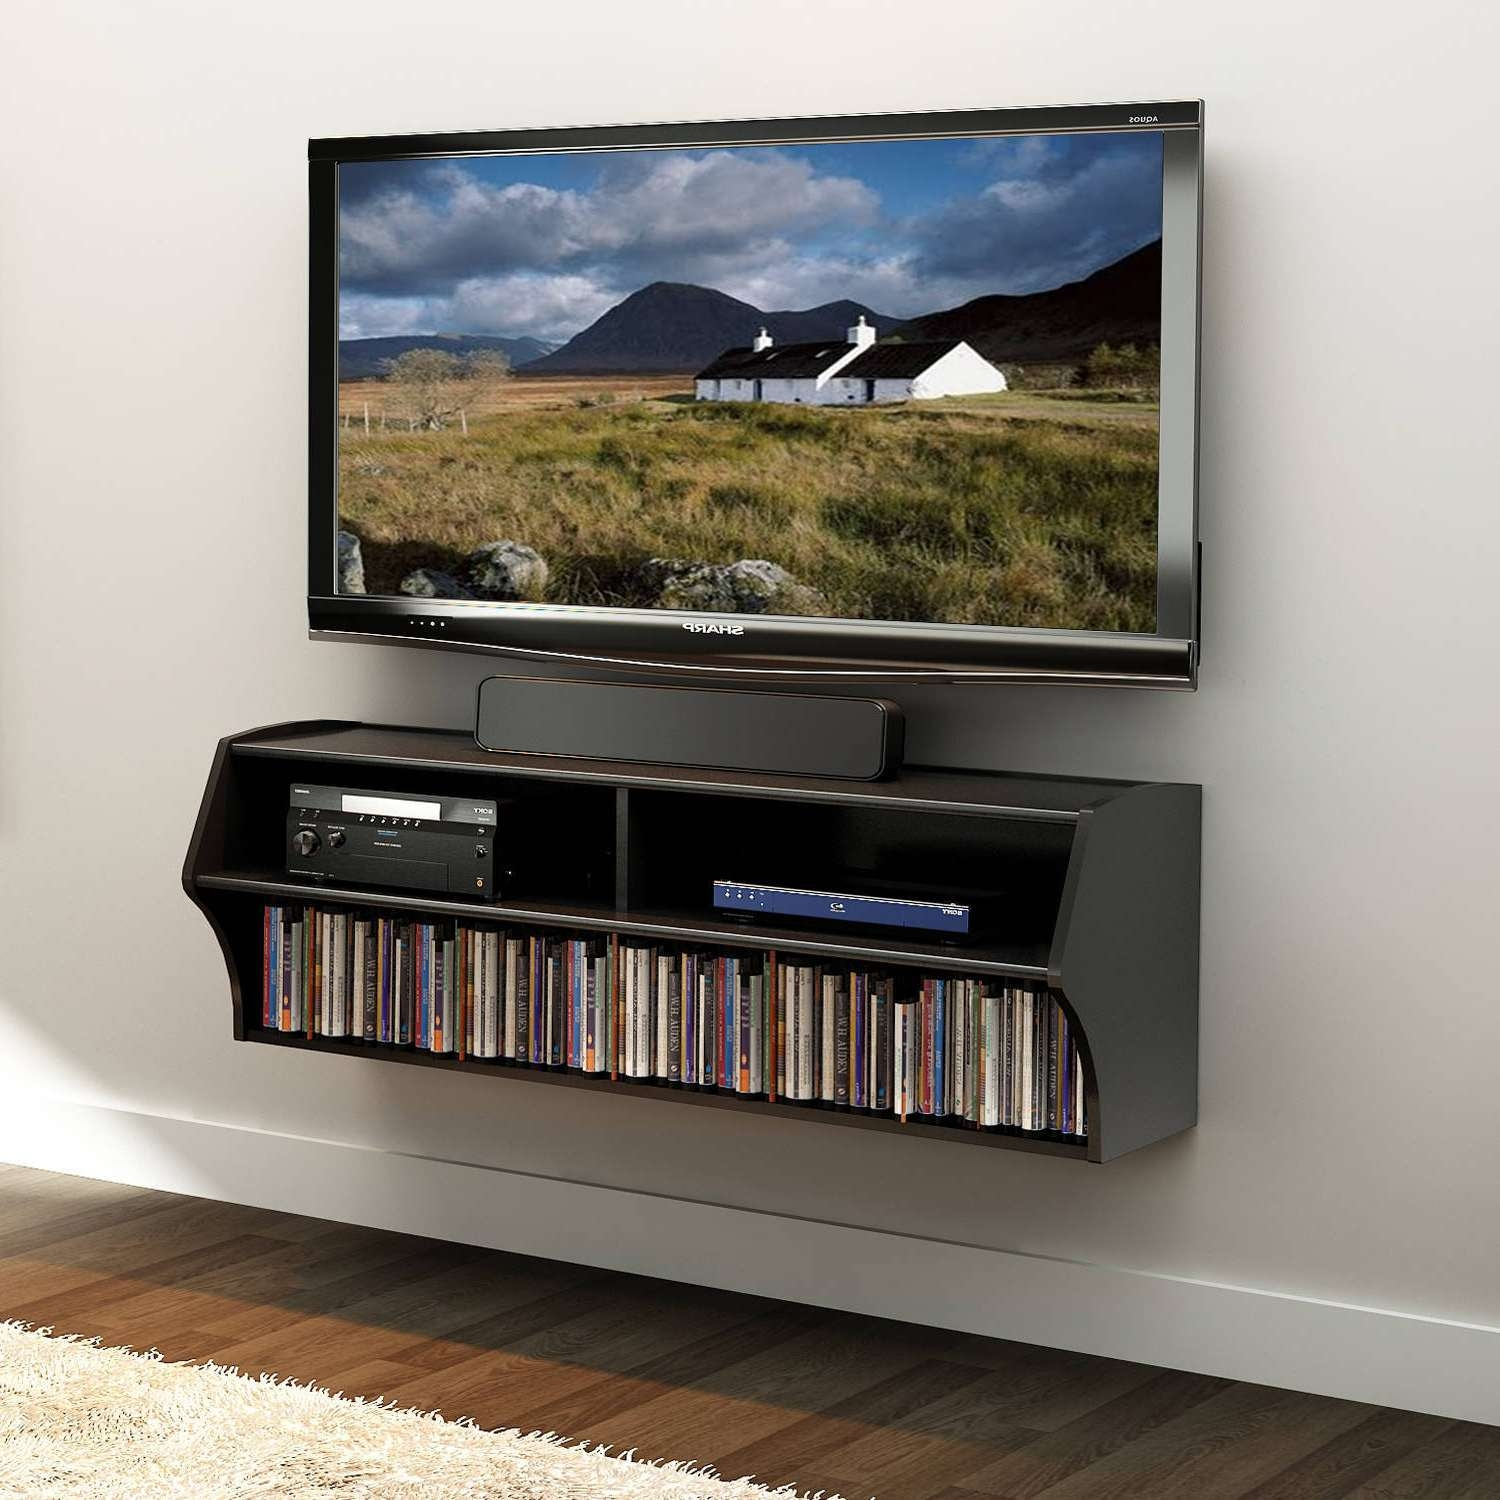 Tv : Tv Units Wonderful 24 Inch Wide Tv Stands High Style Low Intended For 24 Inch Led Tv Stands (View 7 of 15)